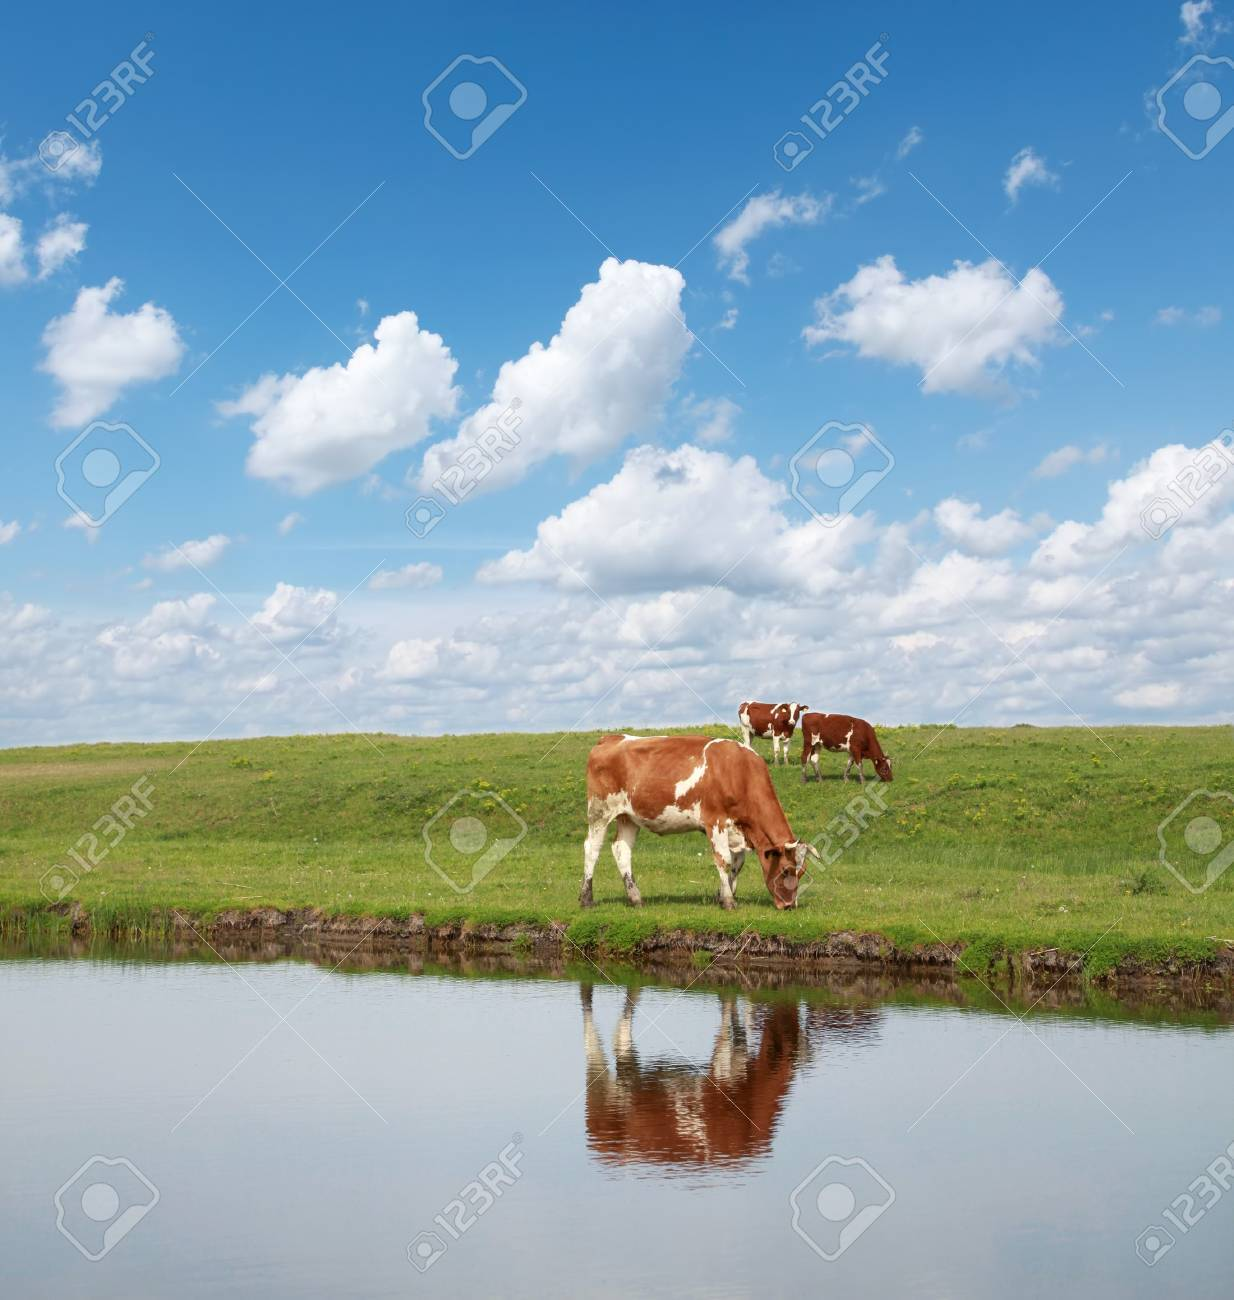 Cows in green field with blue sky and white clouds Stock Photo - 7144915